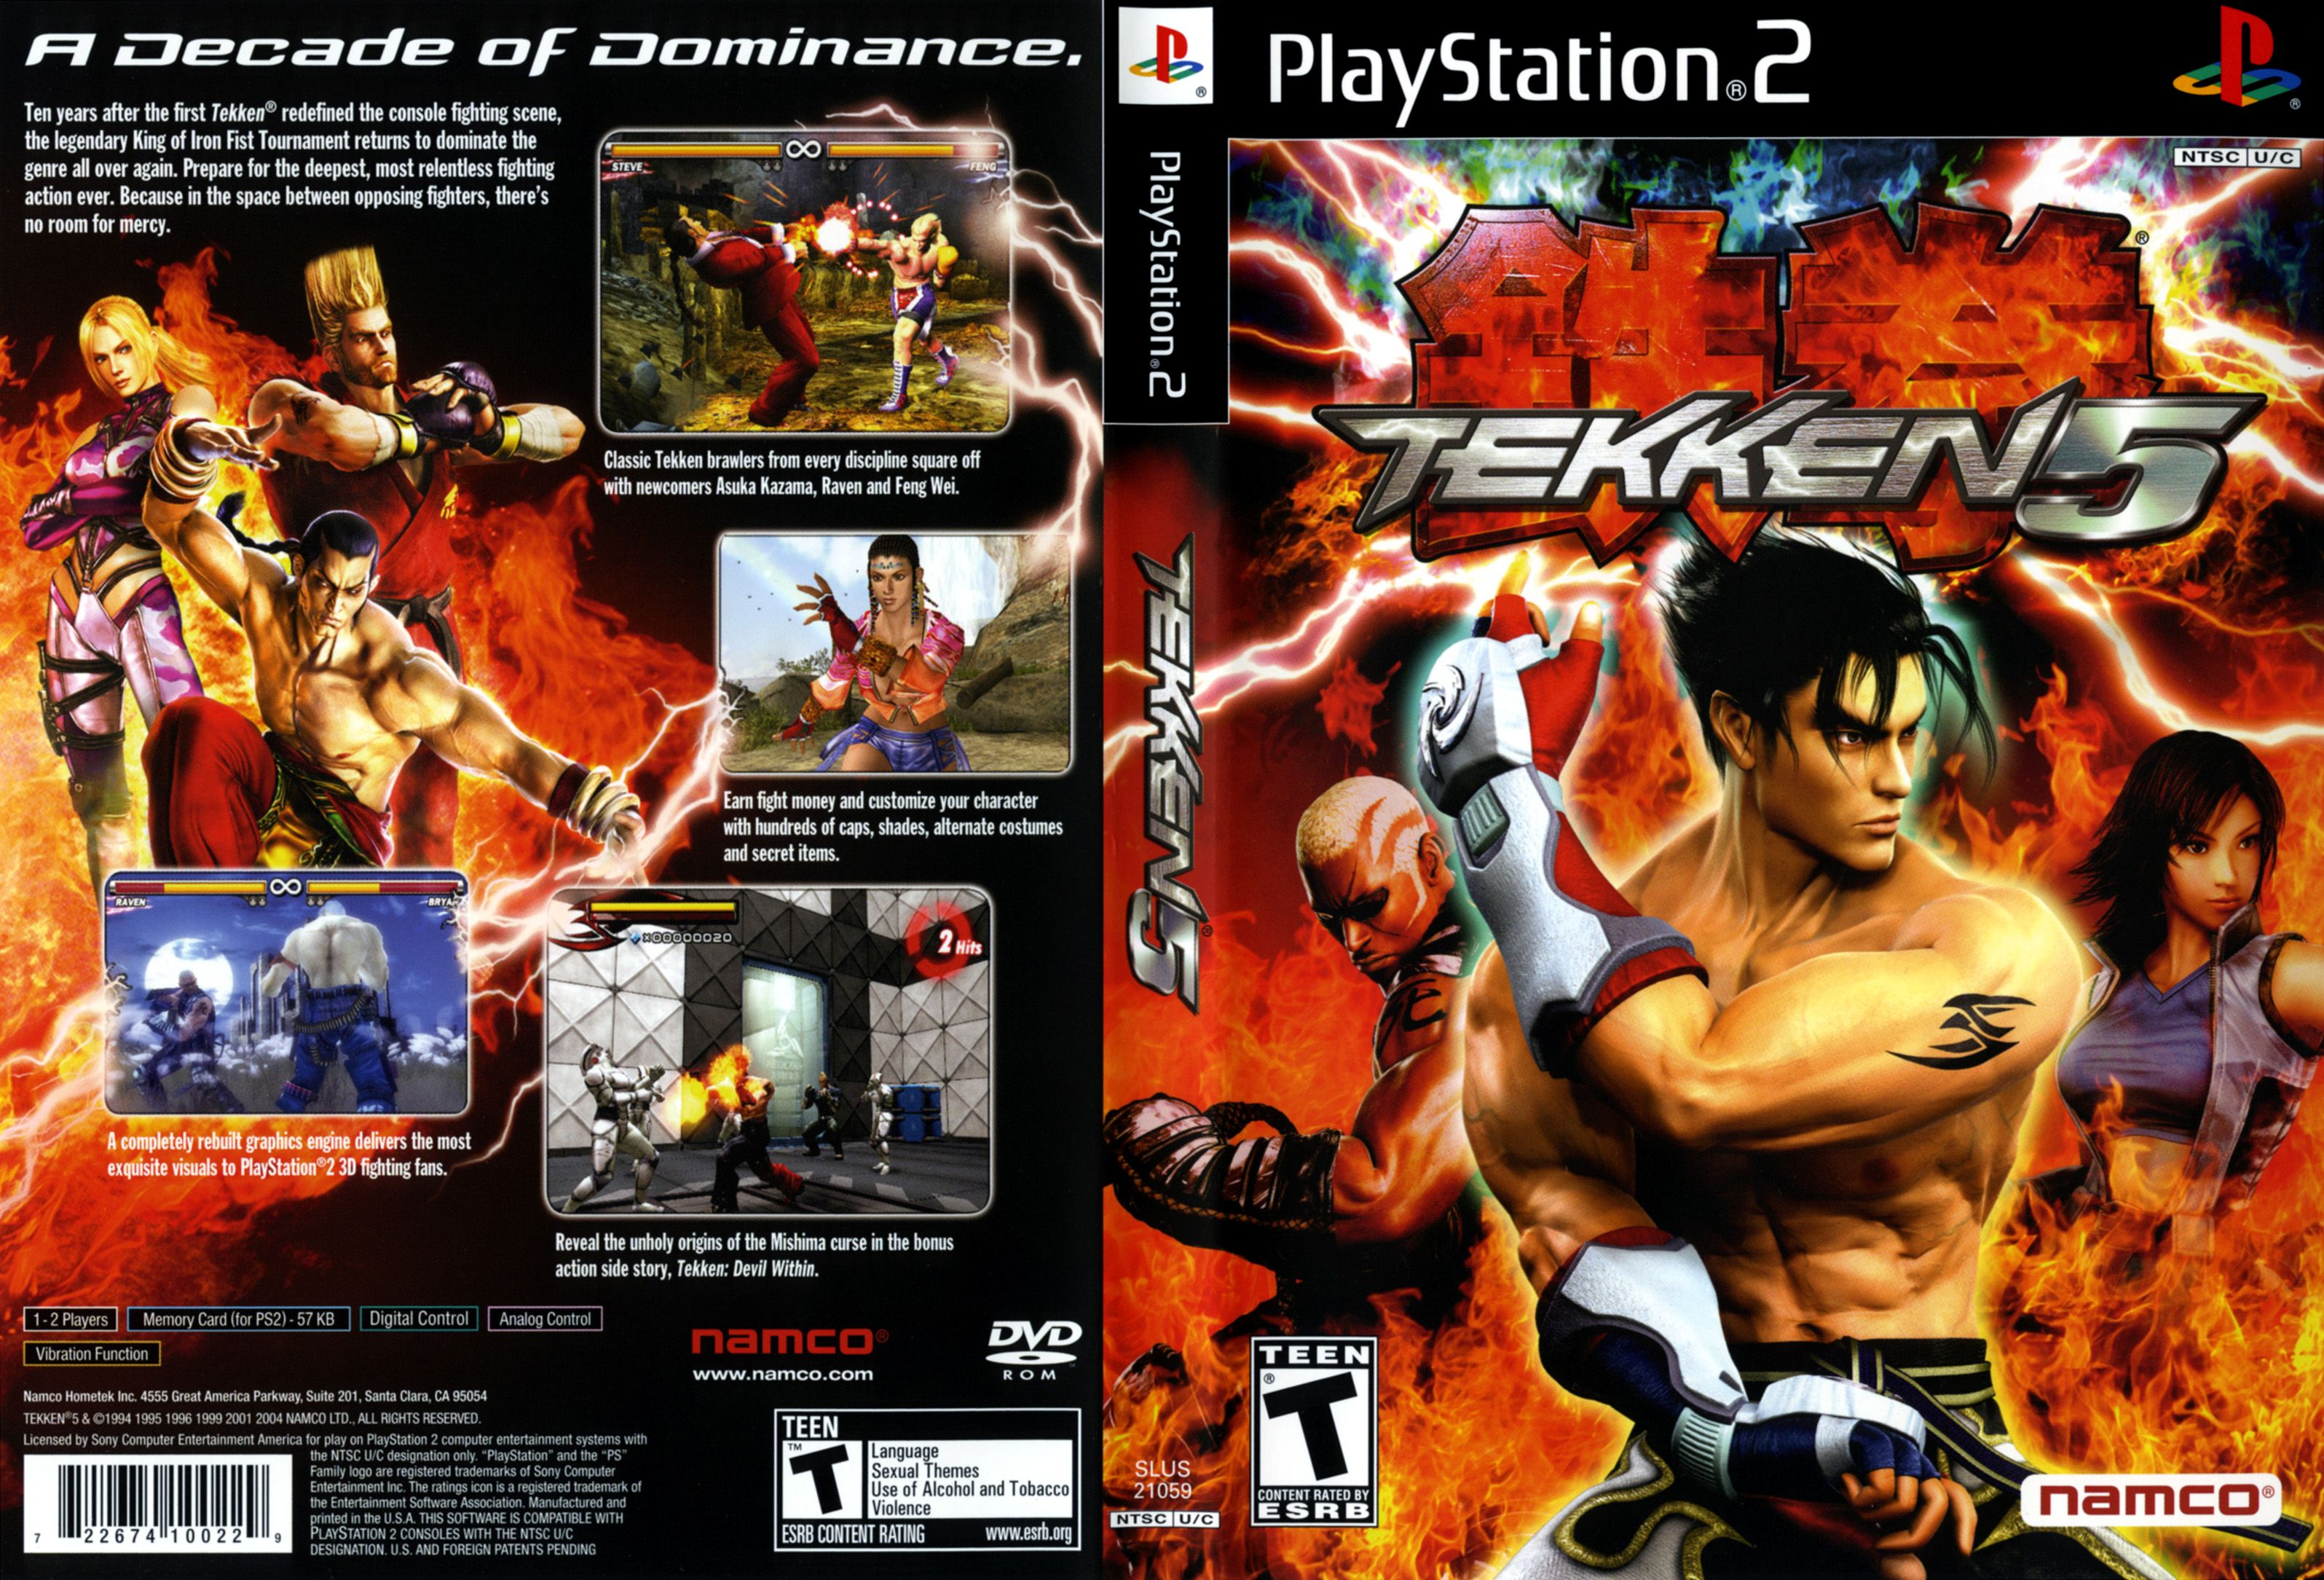 download sony ps 2 iso